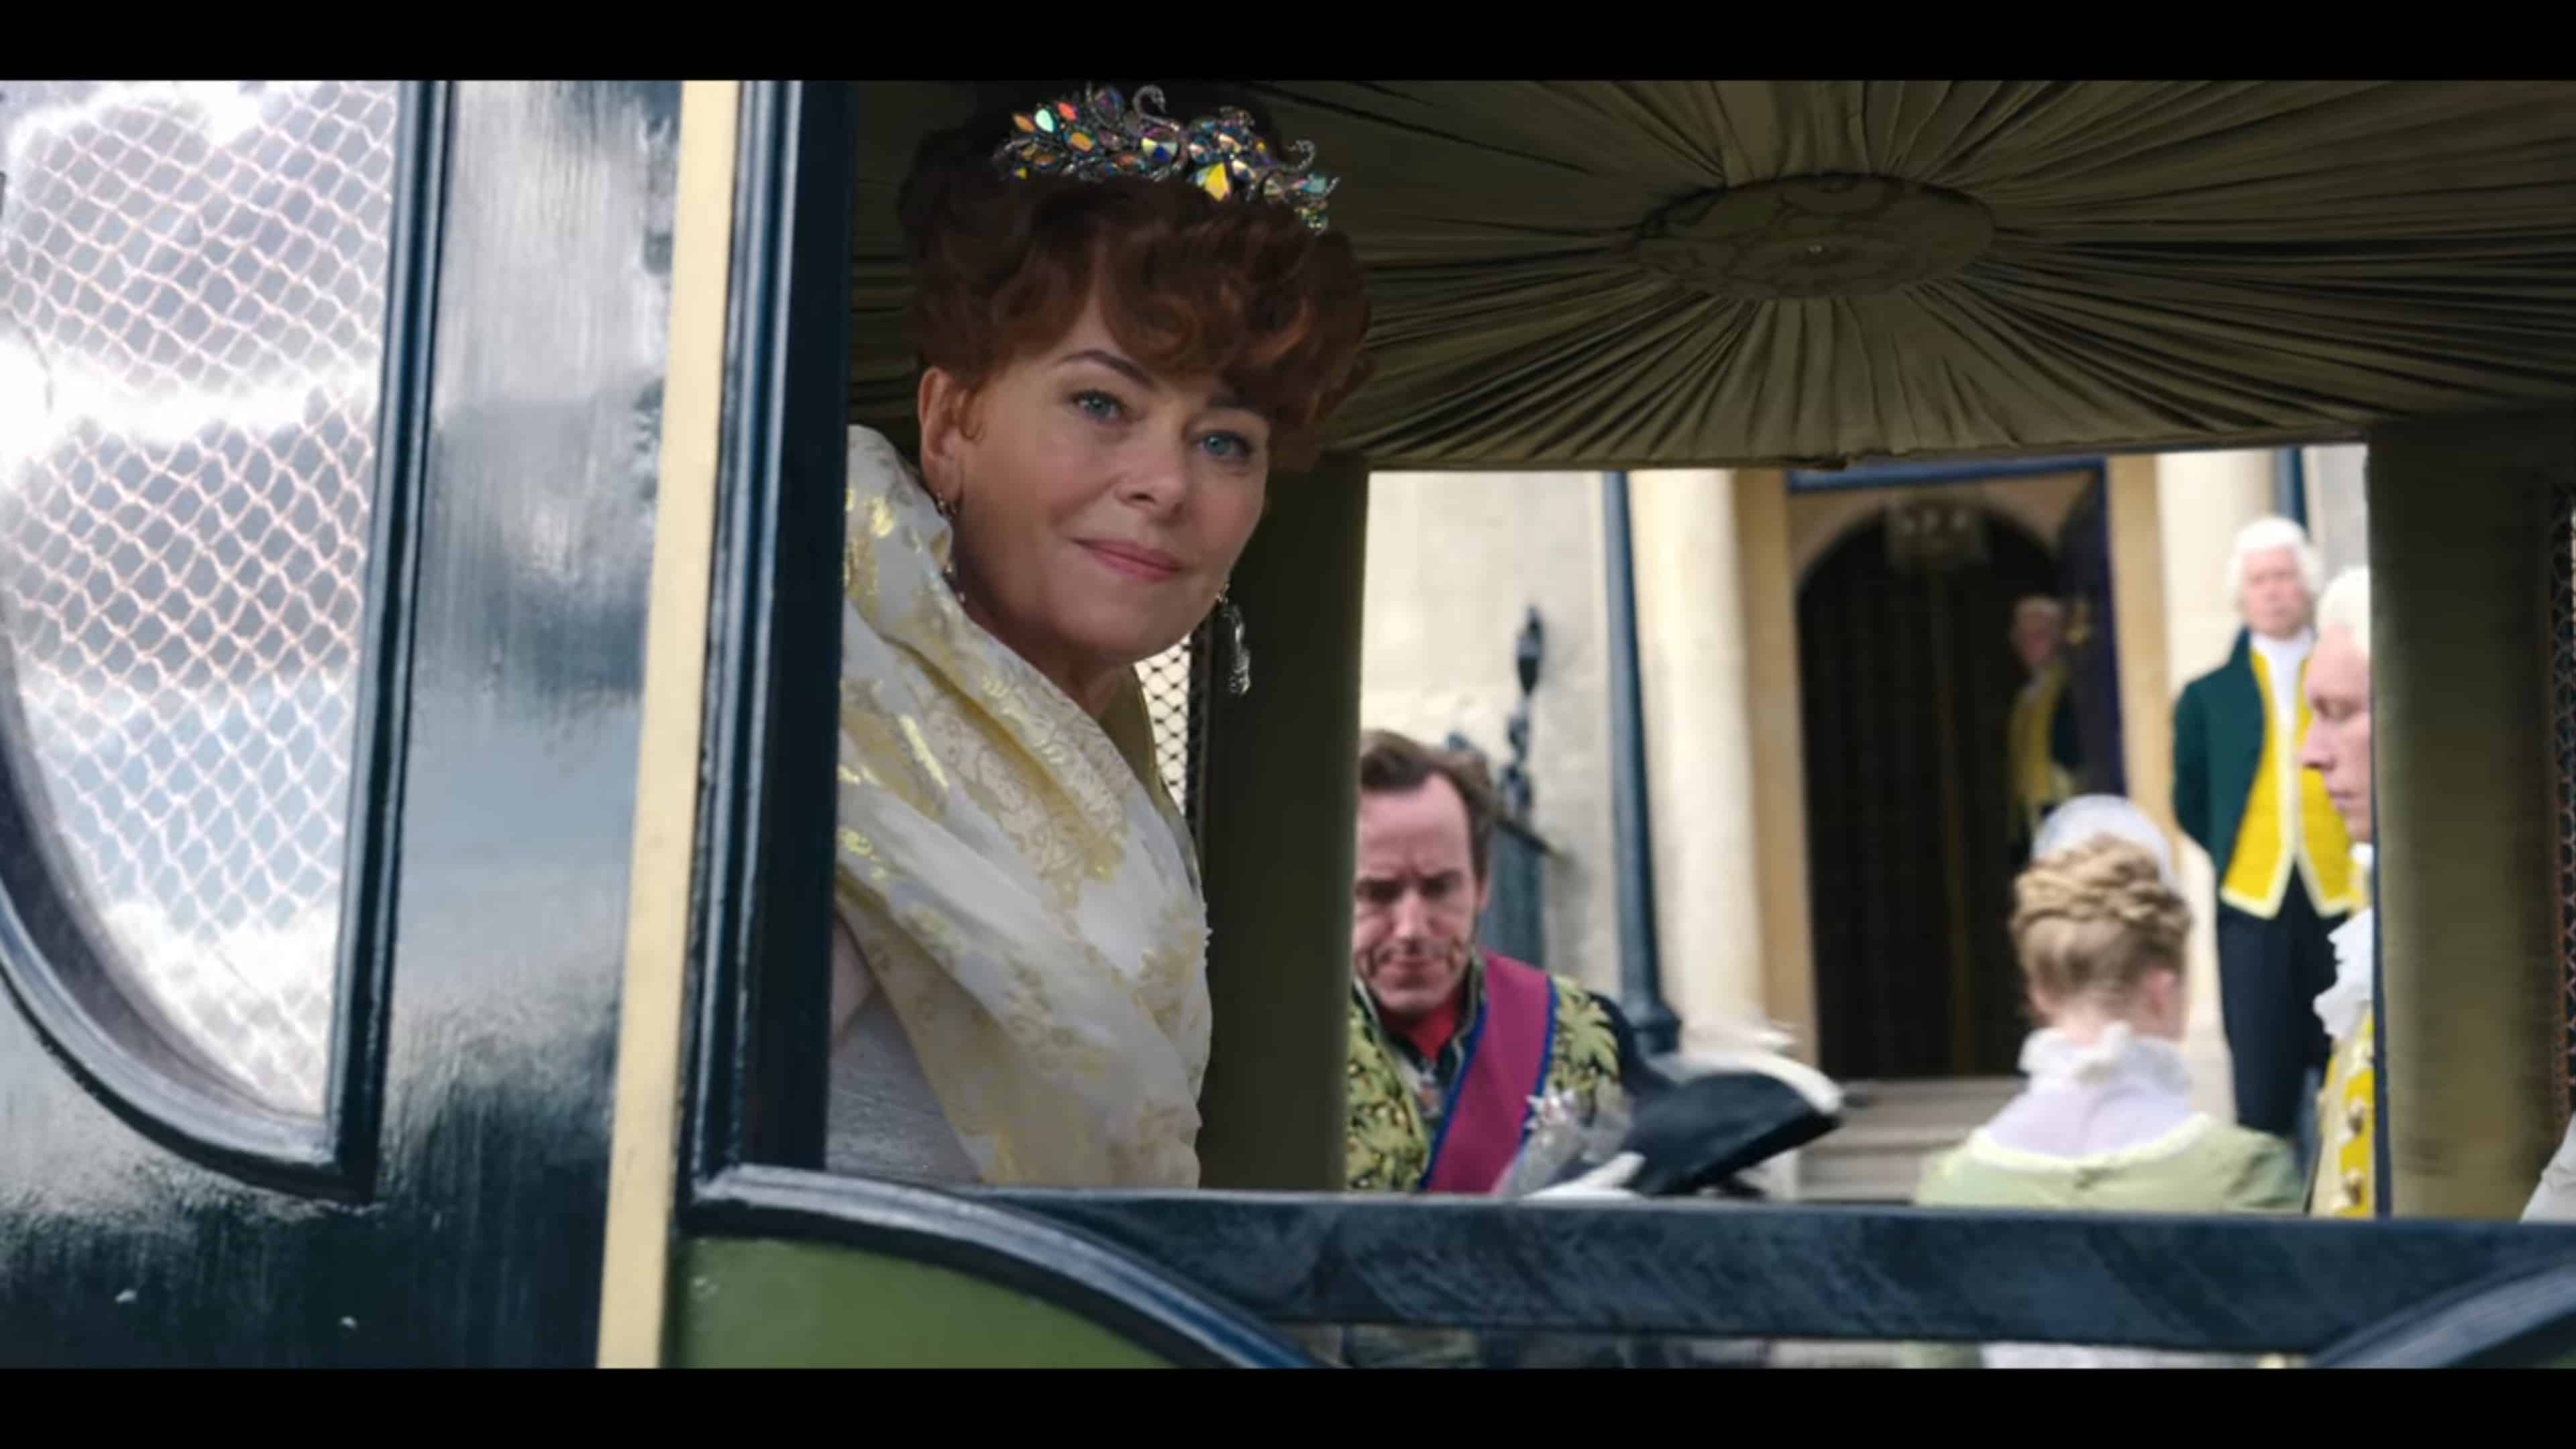 Lady Portia (Polly Walker) in a carriage